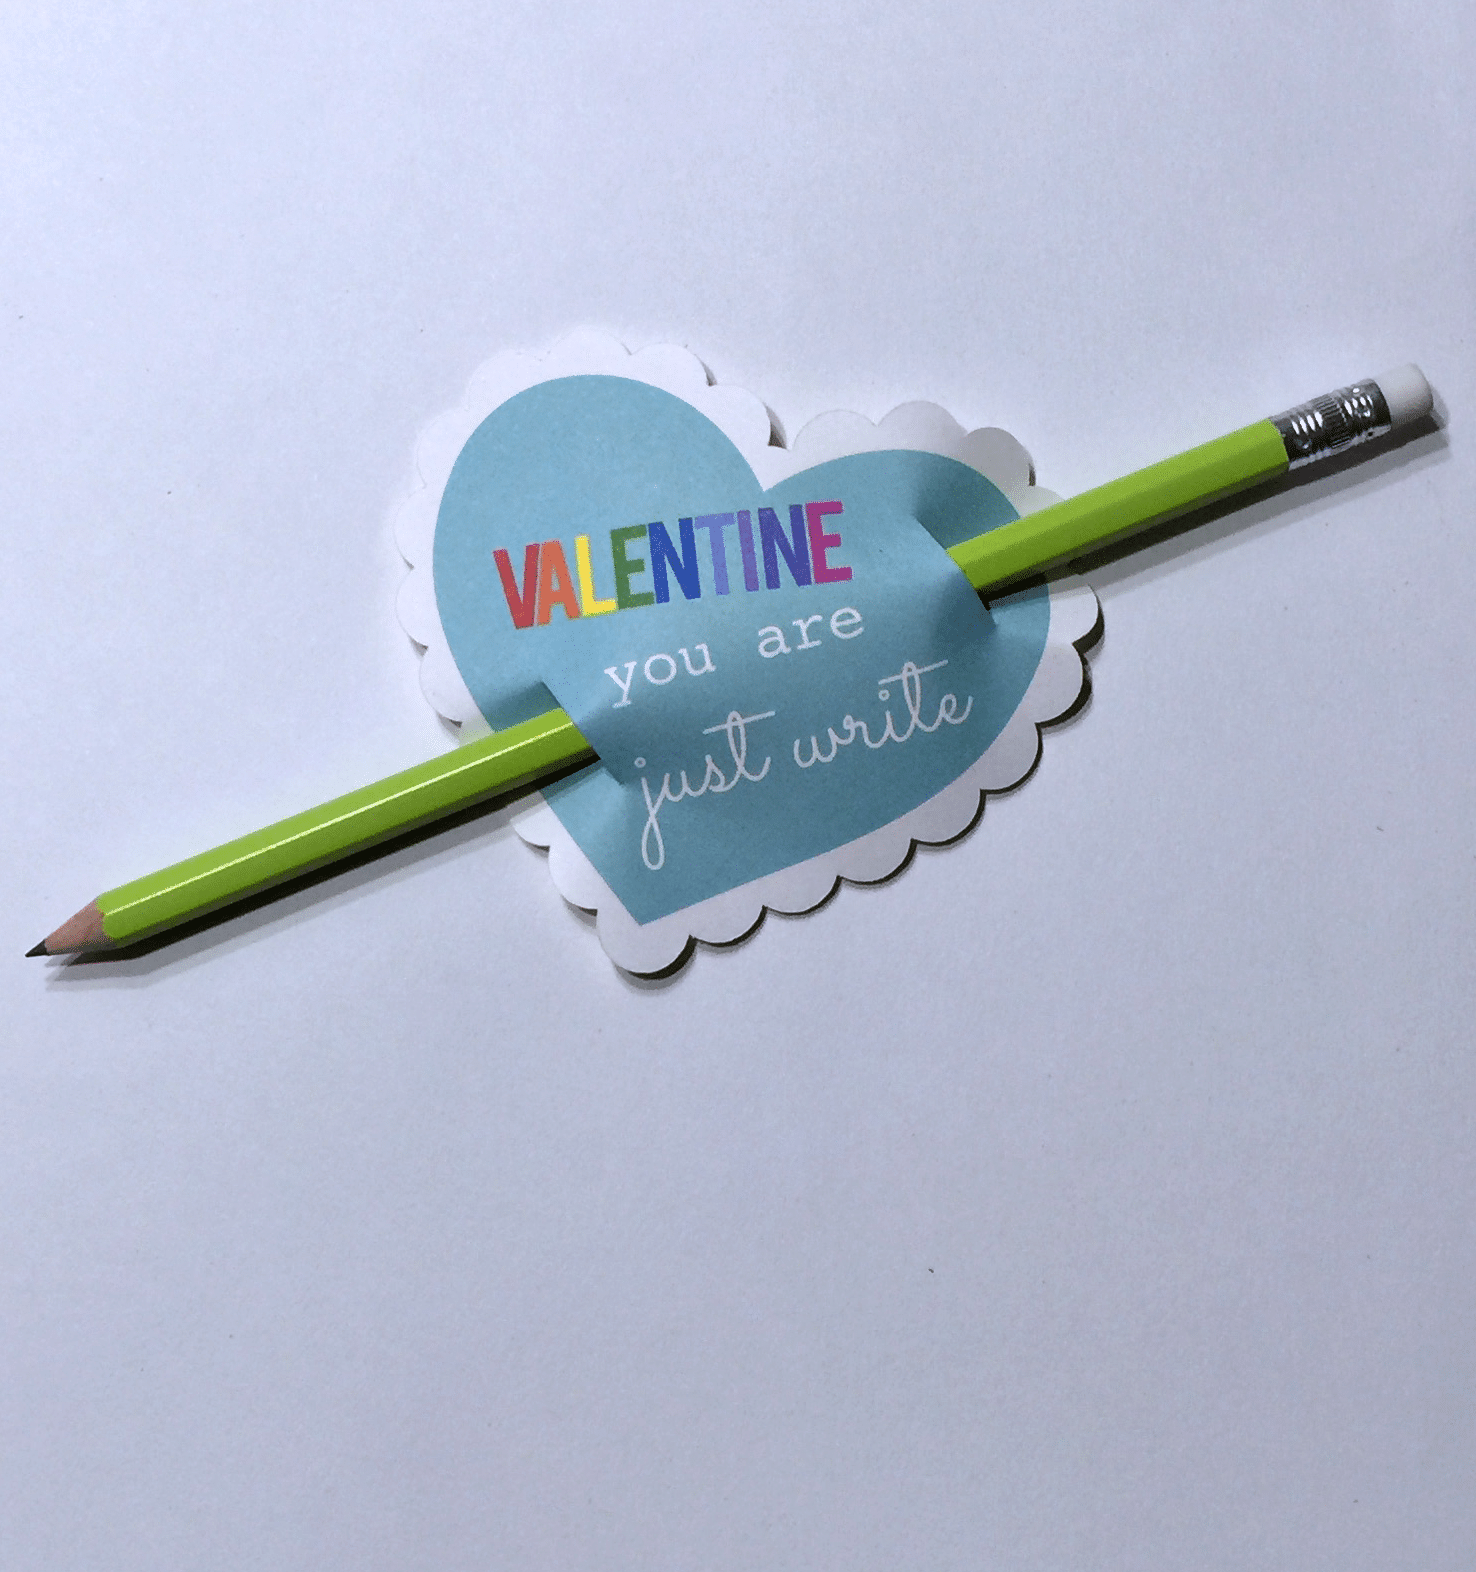 Valentine you are just write